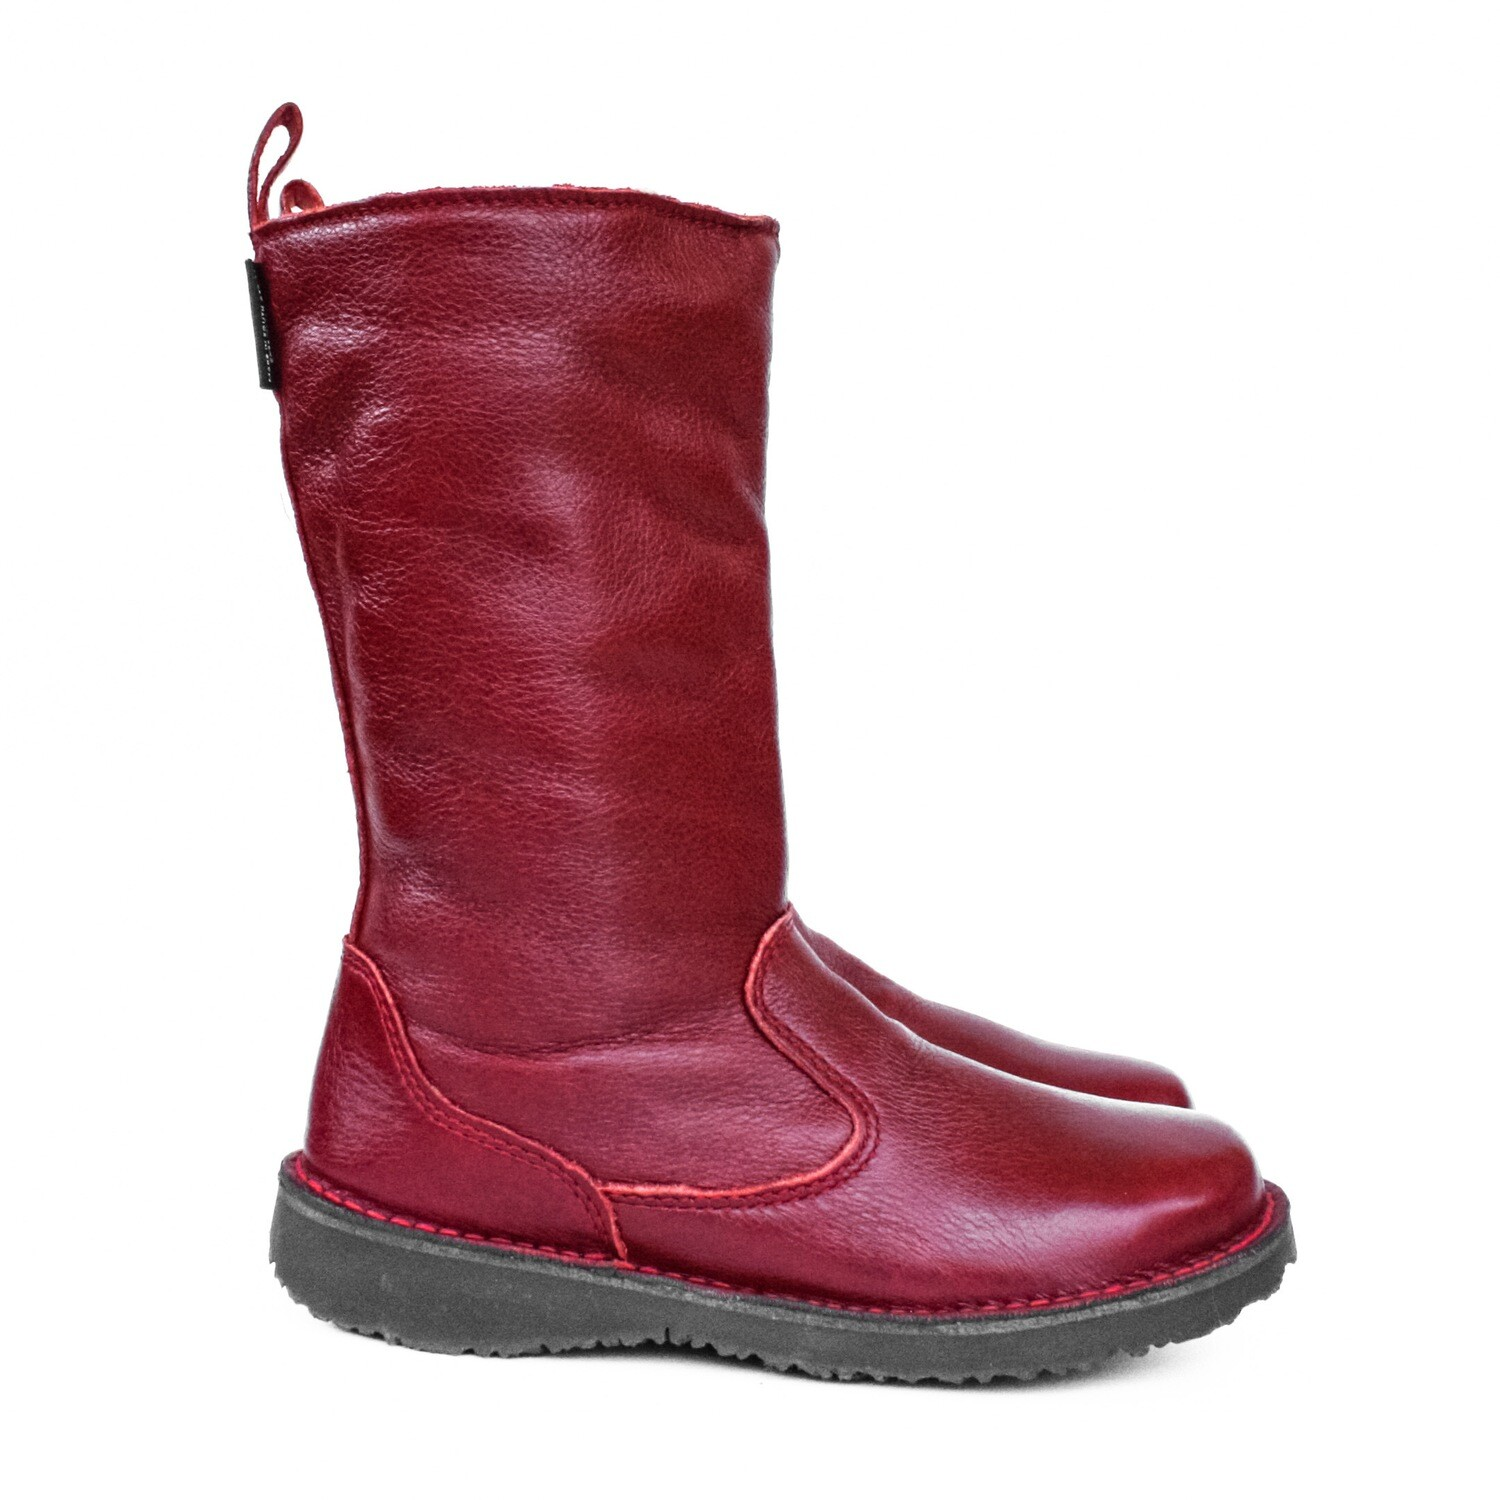 Eskimo Ruby Red wool-lined ladies leather boot